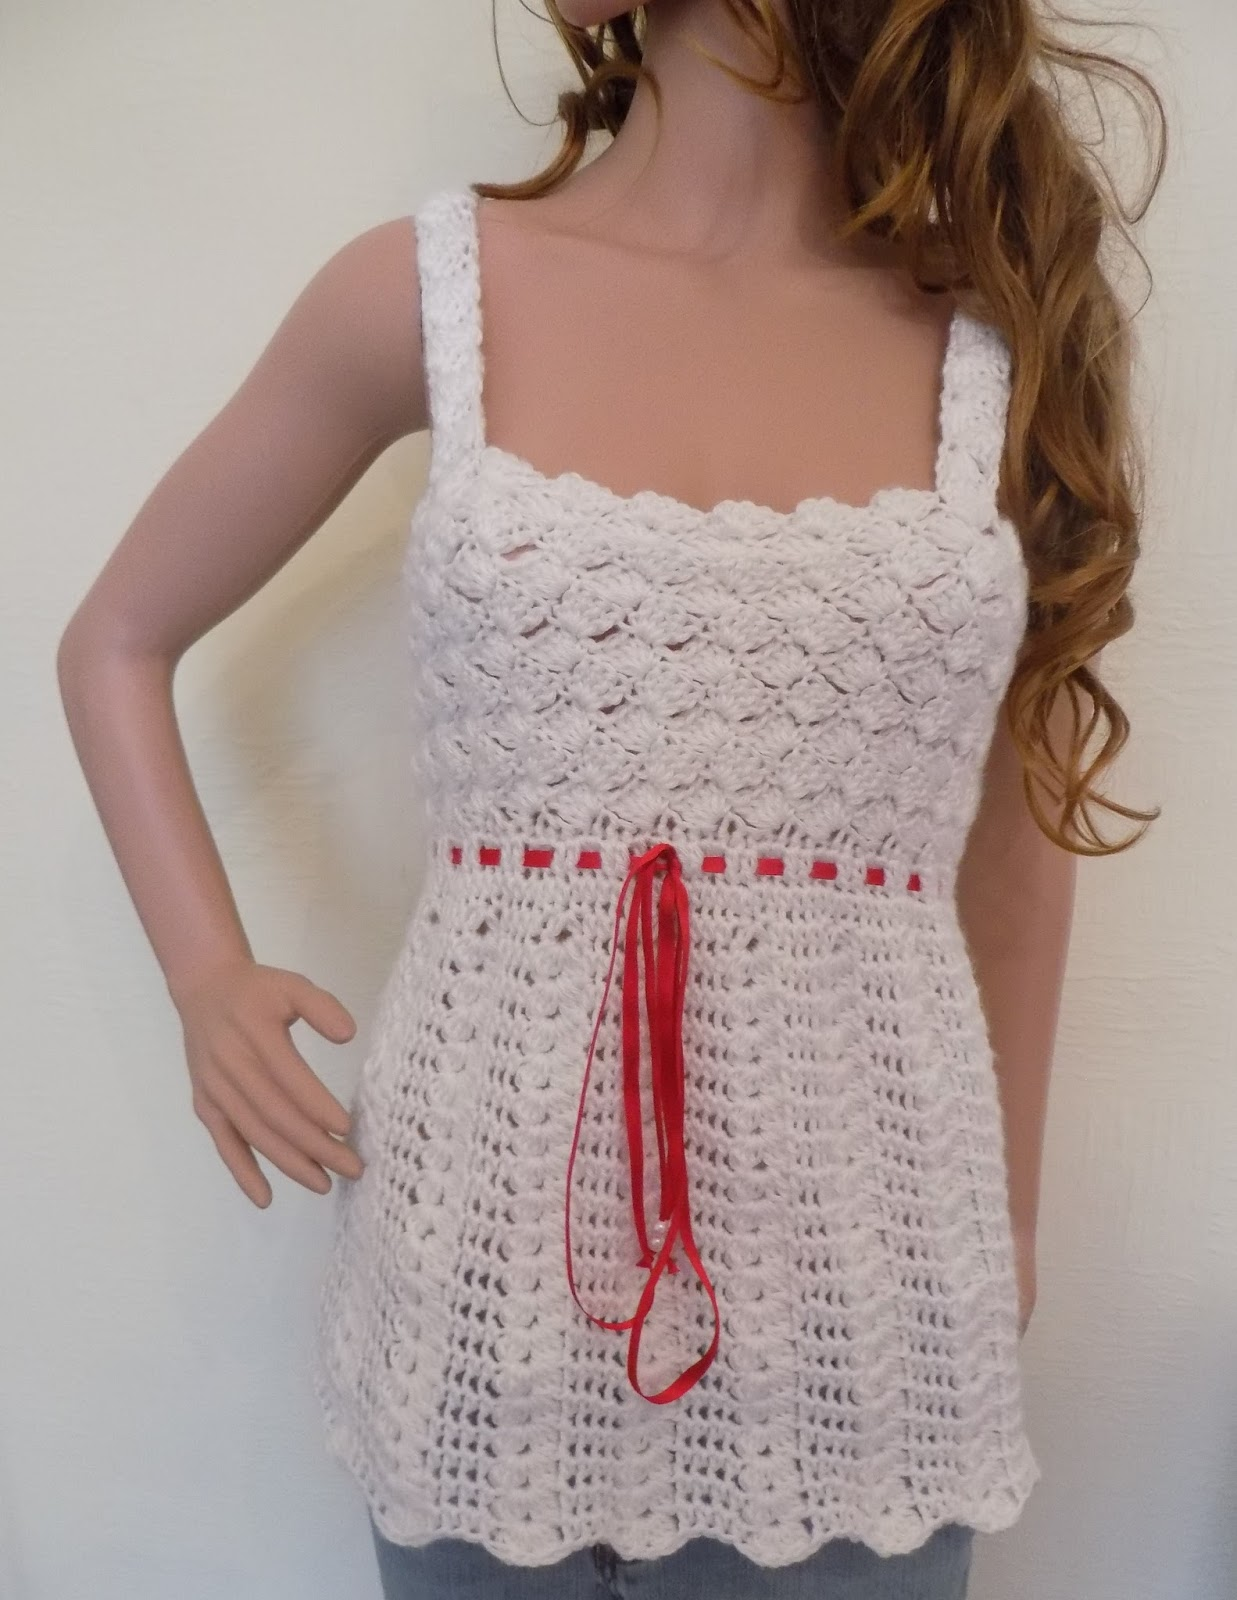 Free Crochet Patterns Using Caron Simply Soft Yarn : Caron Simply Soft Yarn